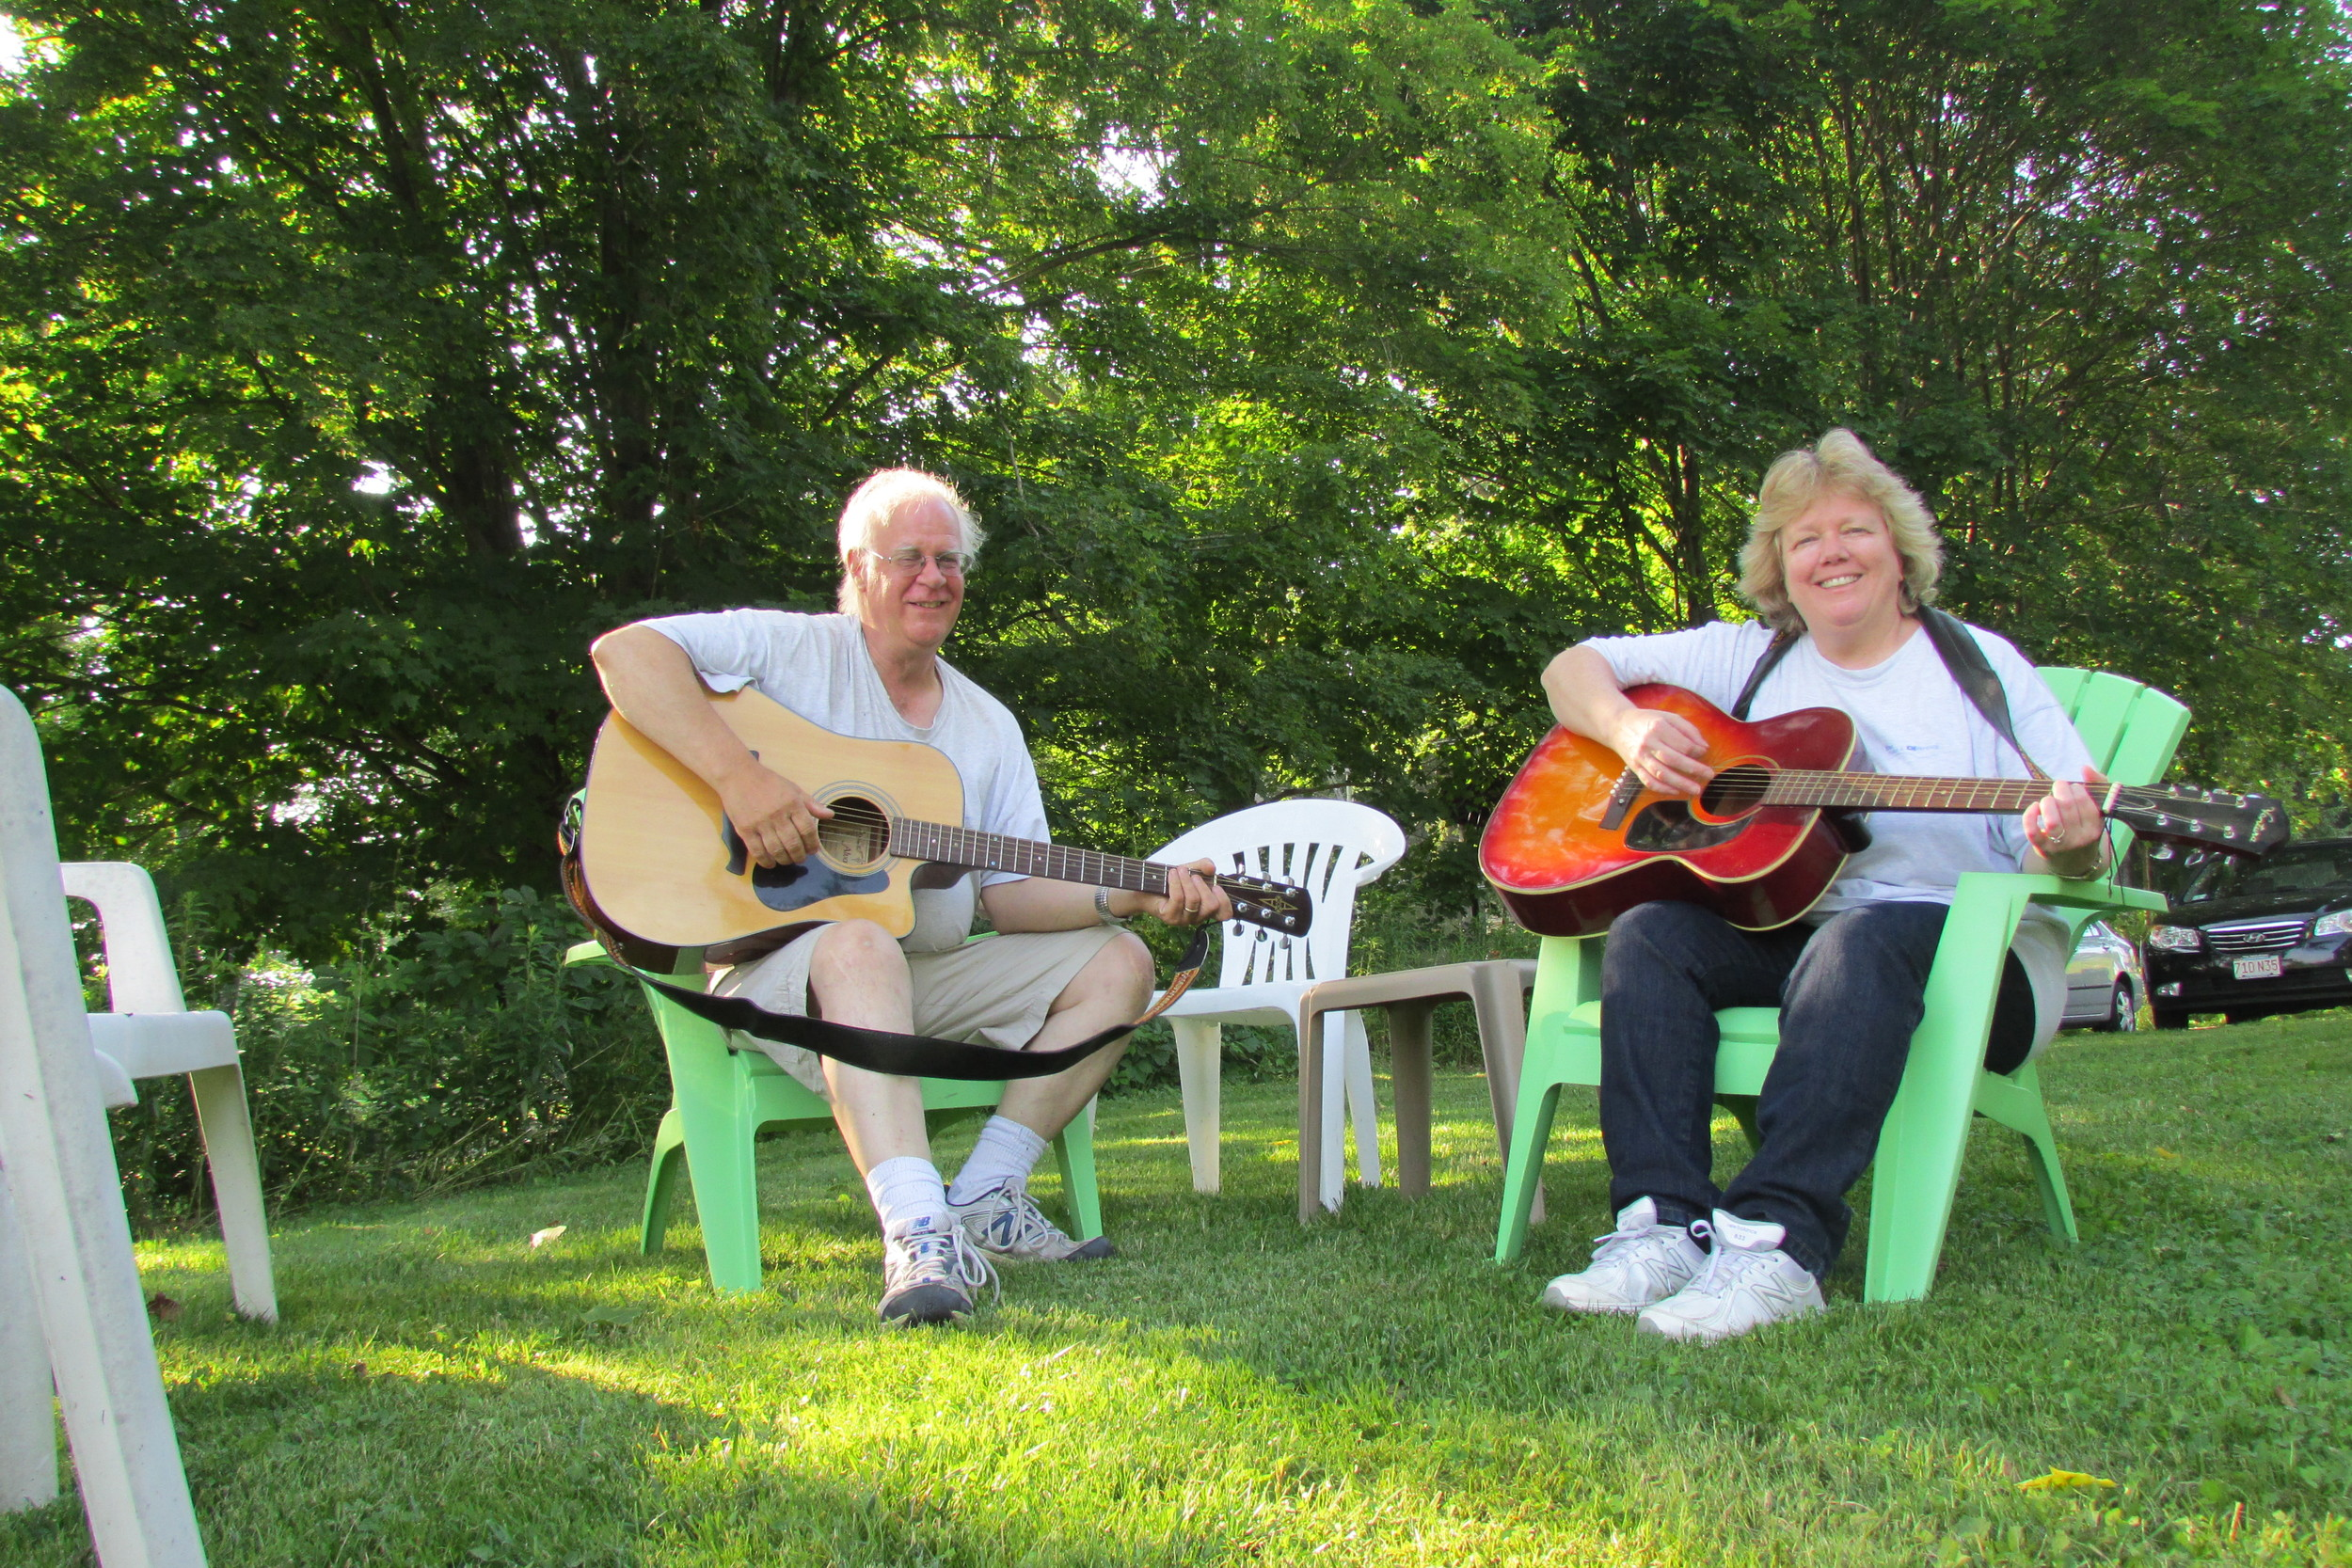 Marty Plankey and his wife, Jean, enjoying some downtime and picking a few tunes in the summer sun (Summer 2014).